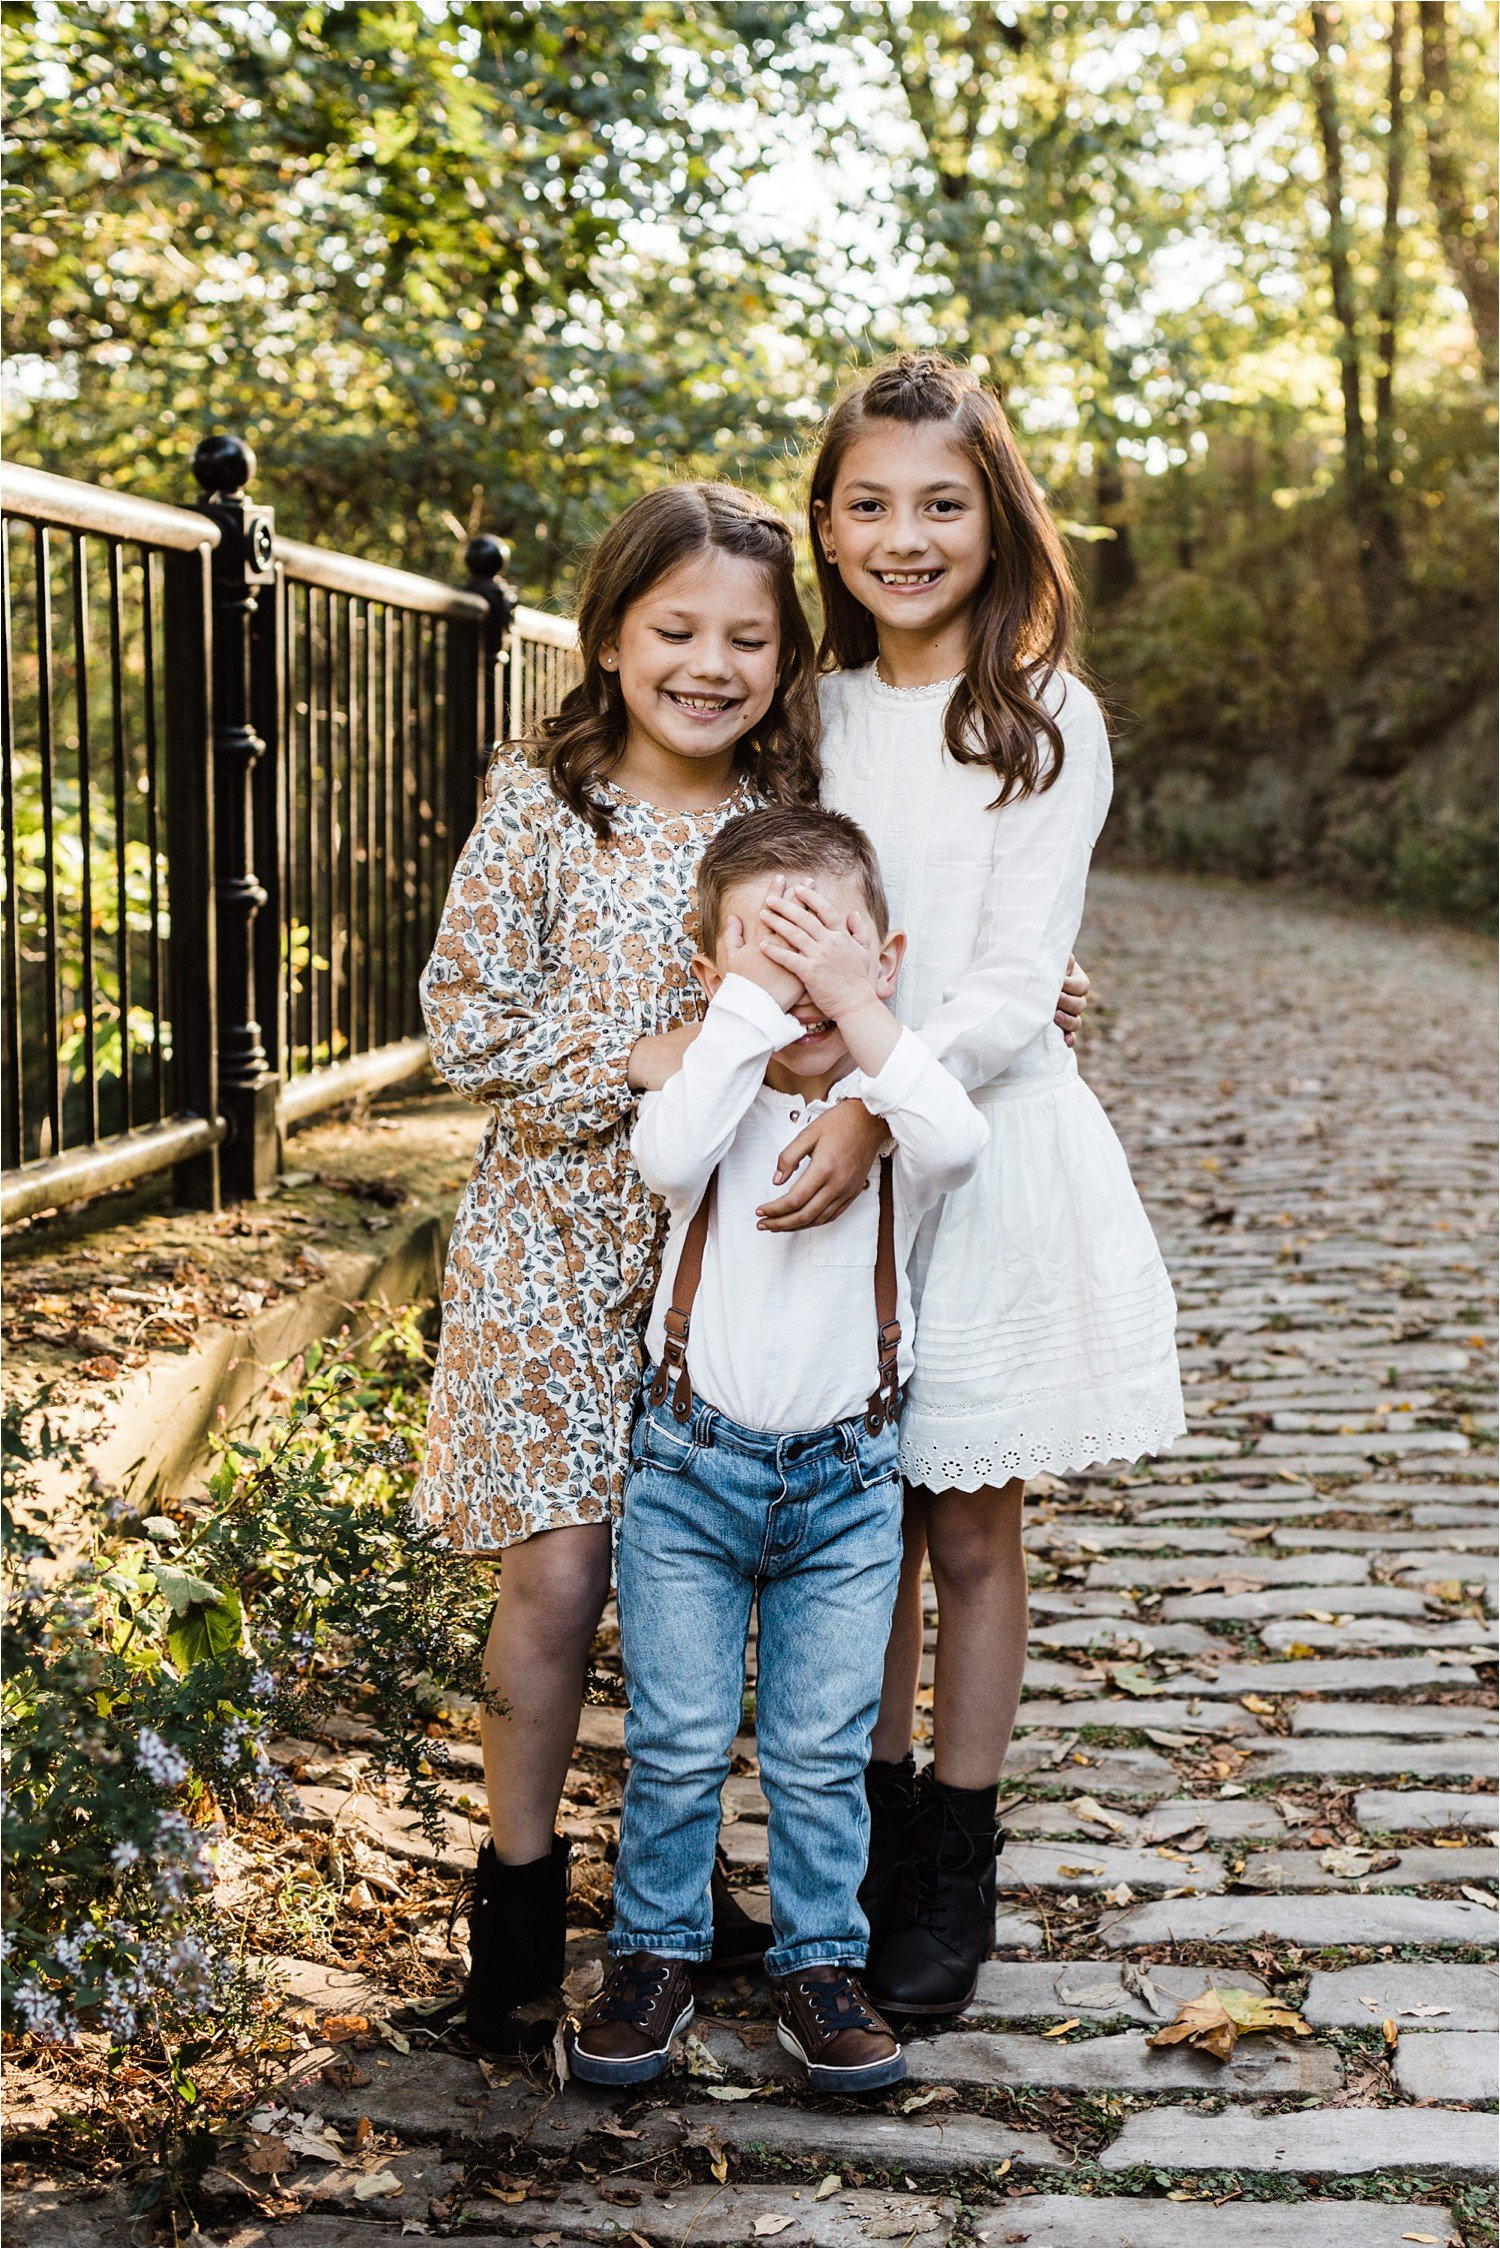 funny boy hiding from camera in a photo with sisters